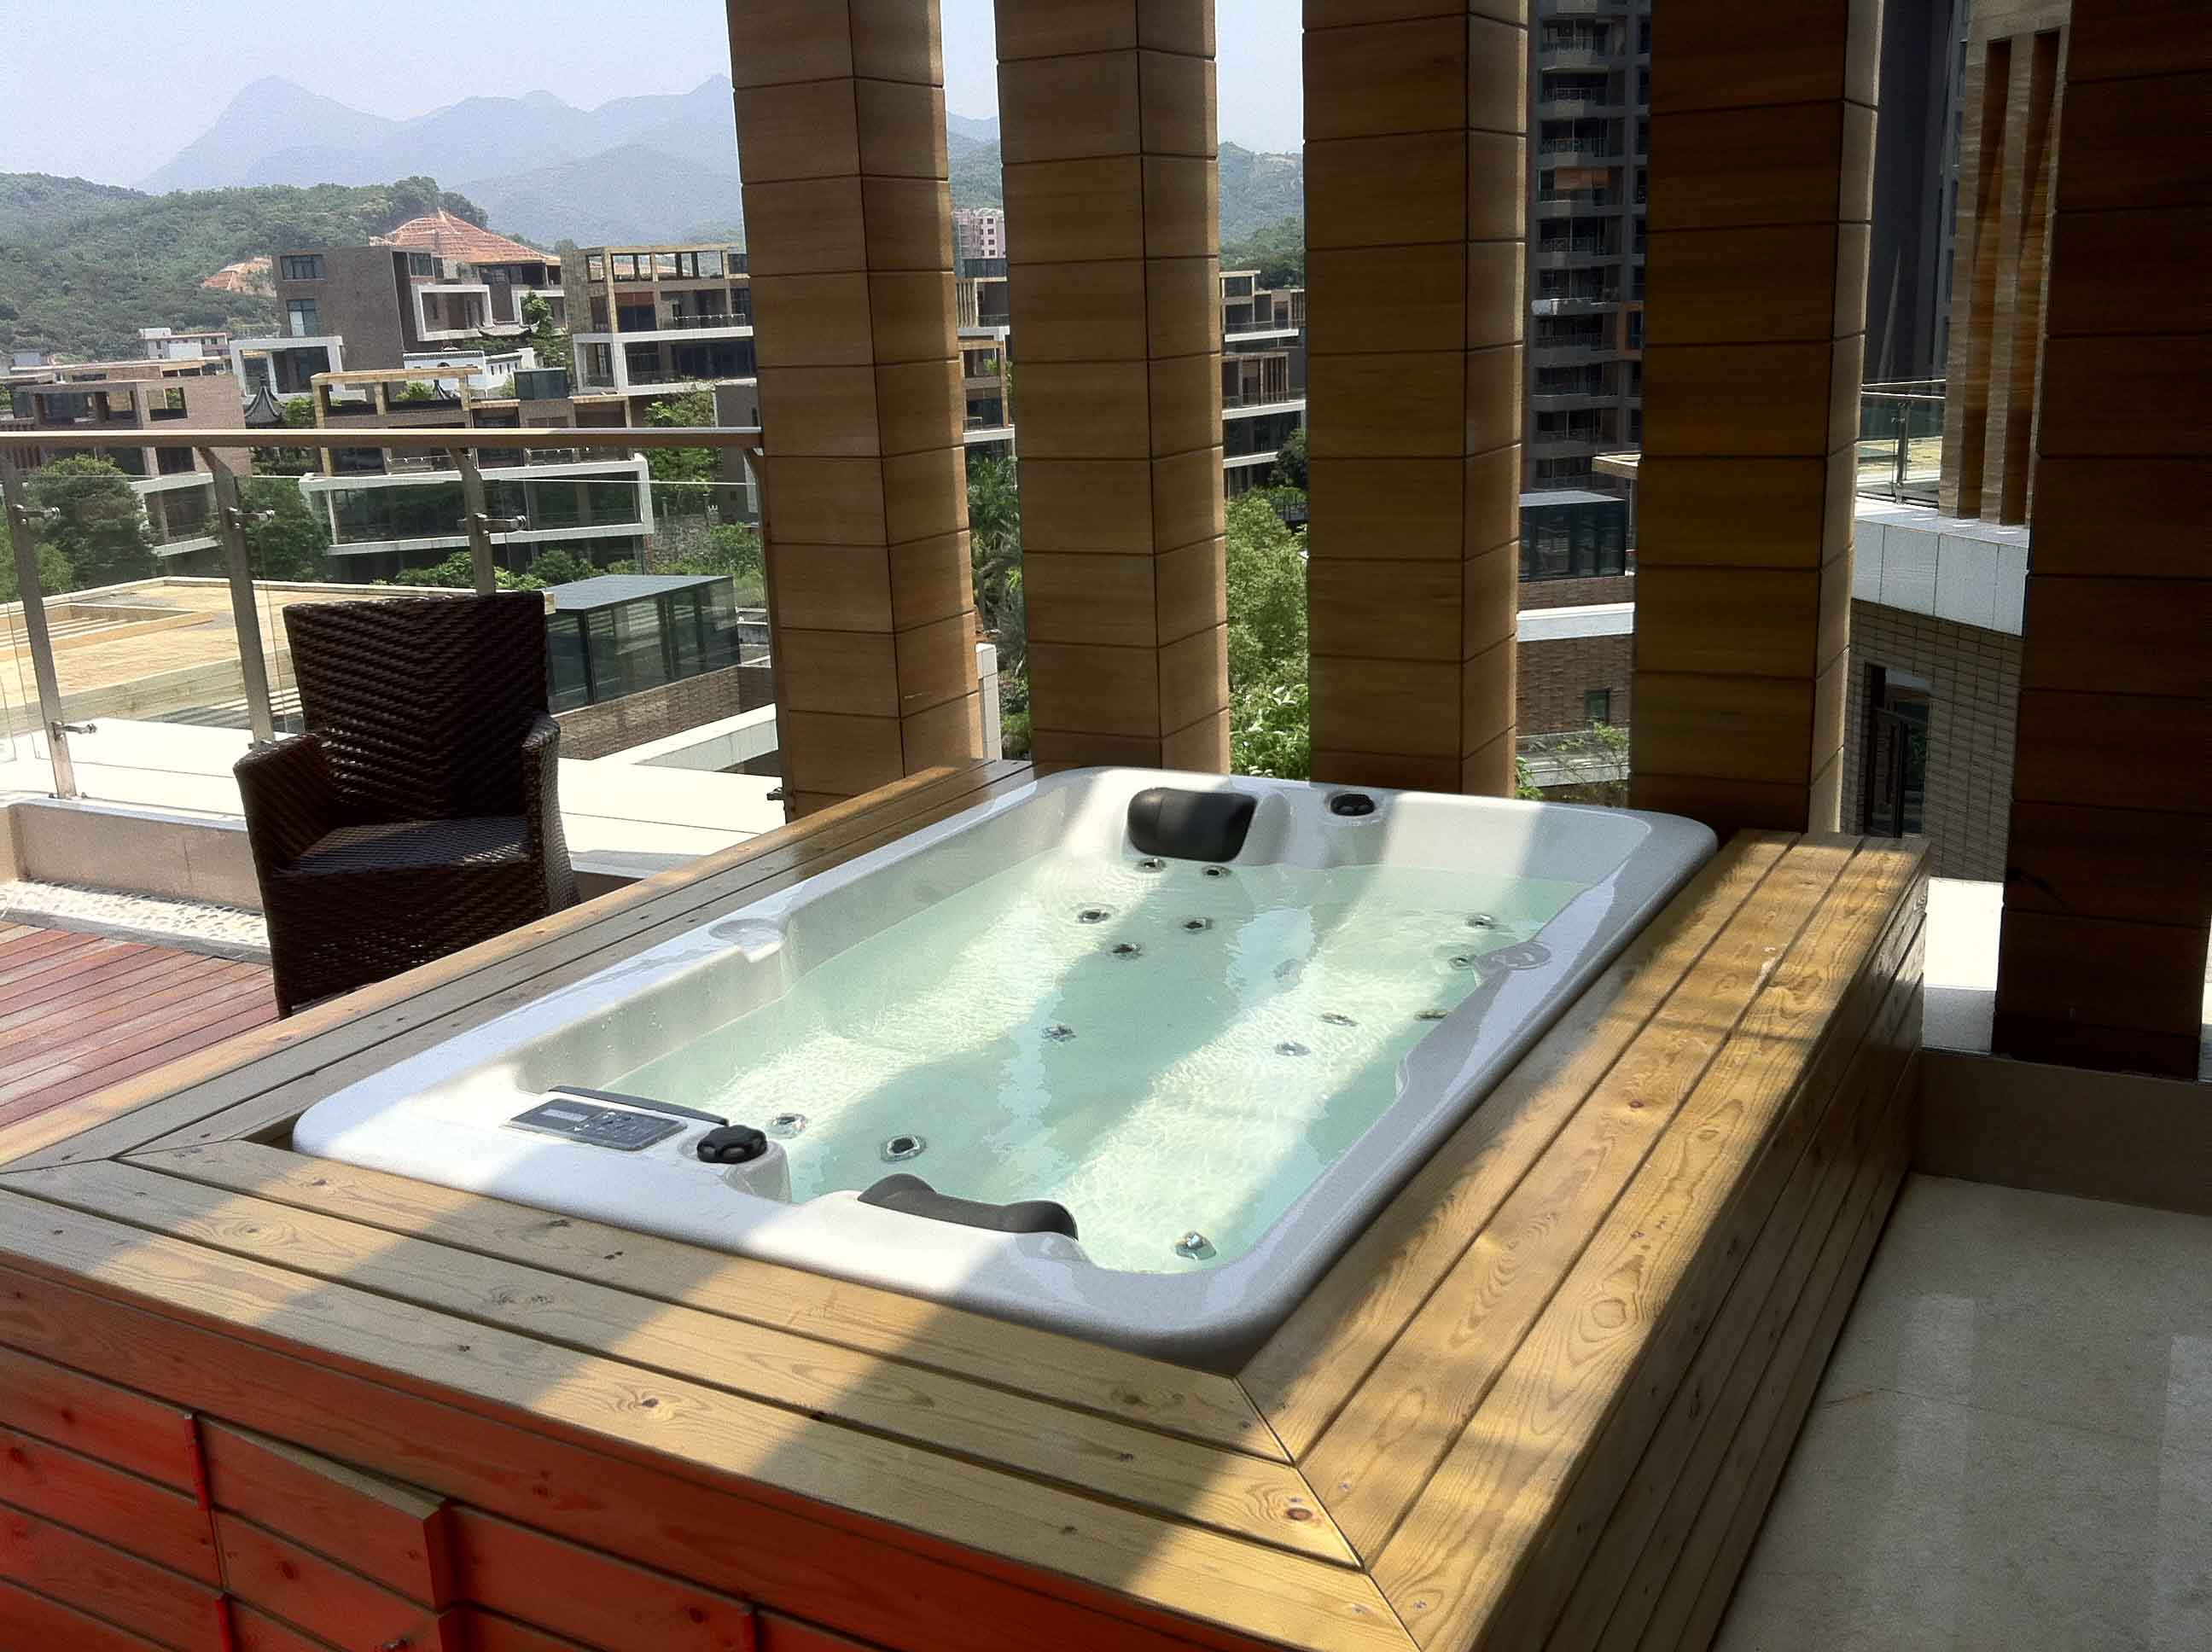 Jacuzzi Pool Temperature Poolworld Philippines Inc Beata 2 Person Jacuzzi Hydro